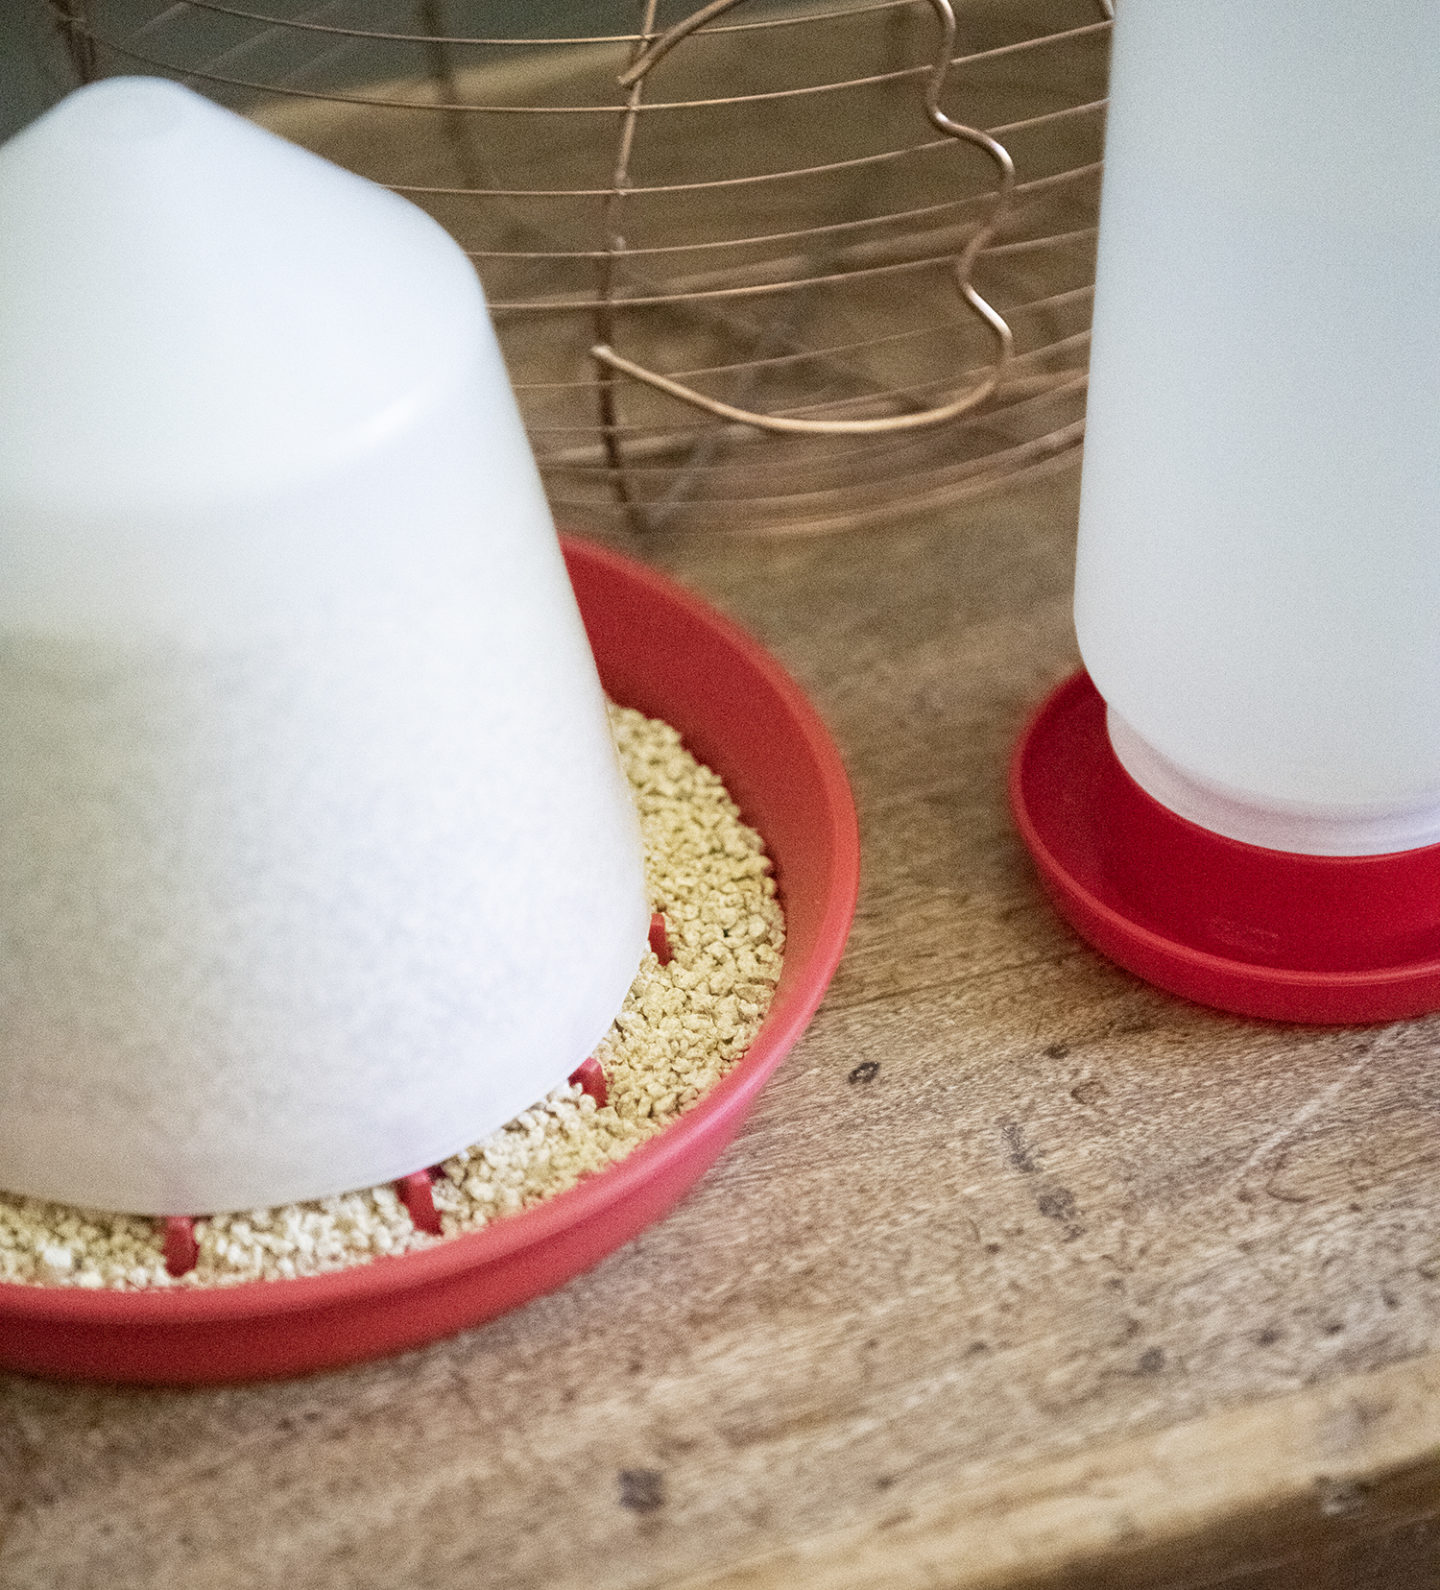 How to Set up a Brooder for Chicks: Chick Feeder and Waterer